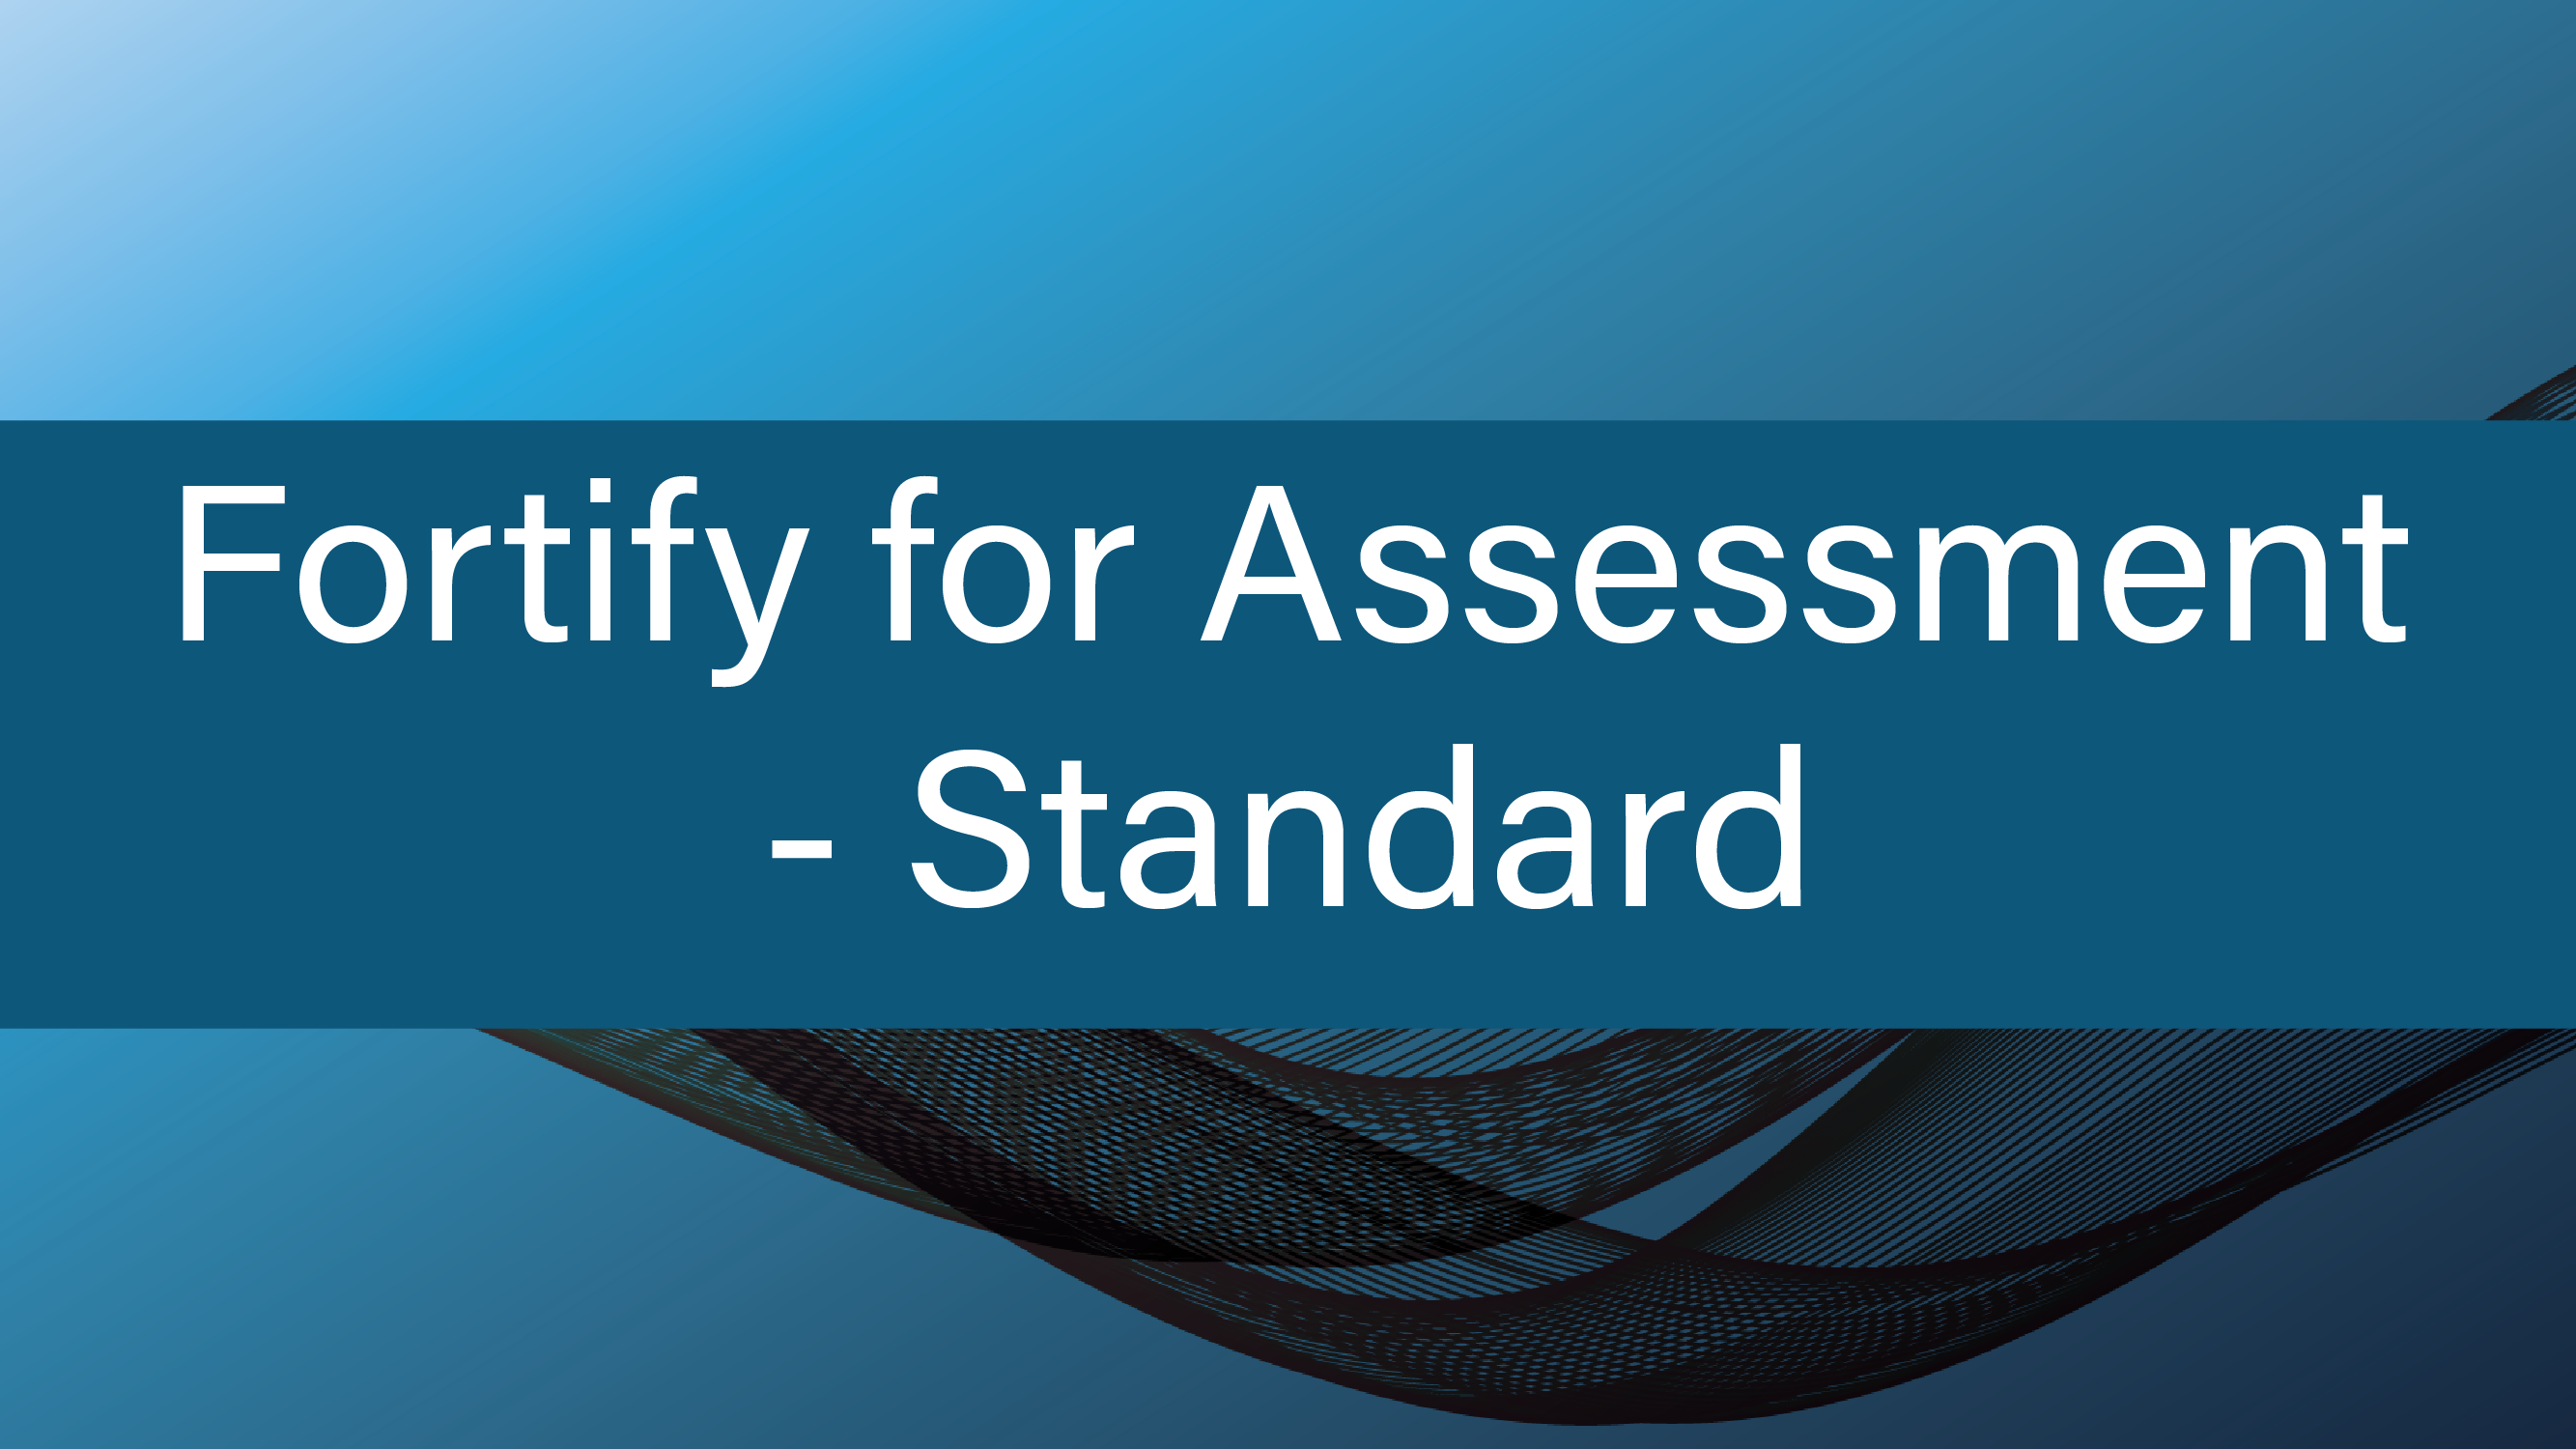 Fortify for Assessment - Standard